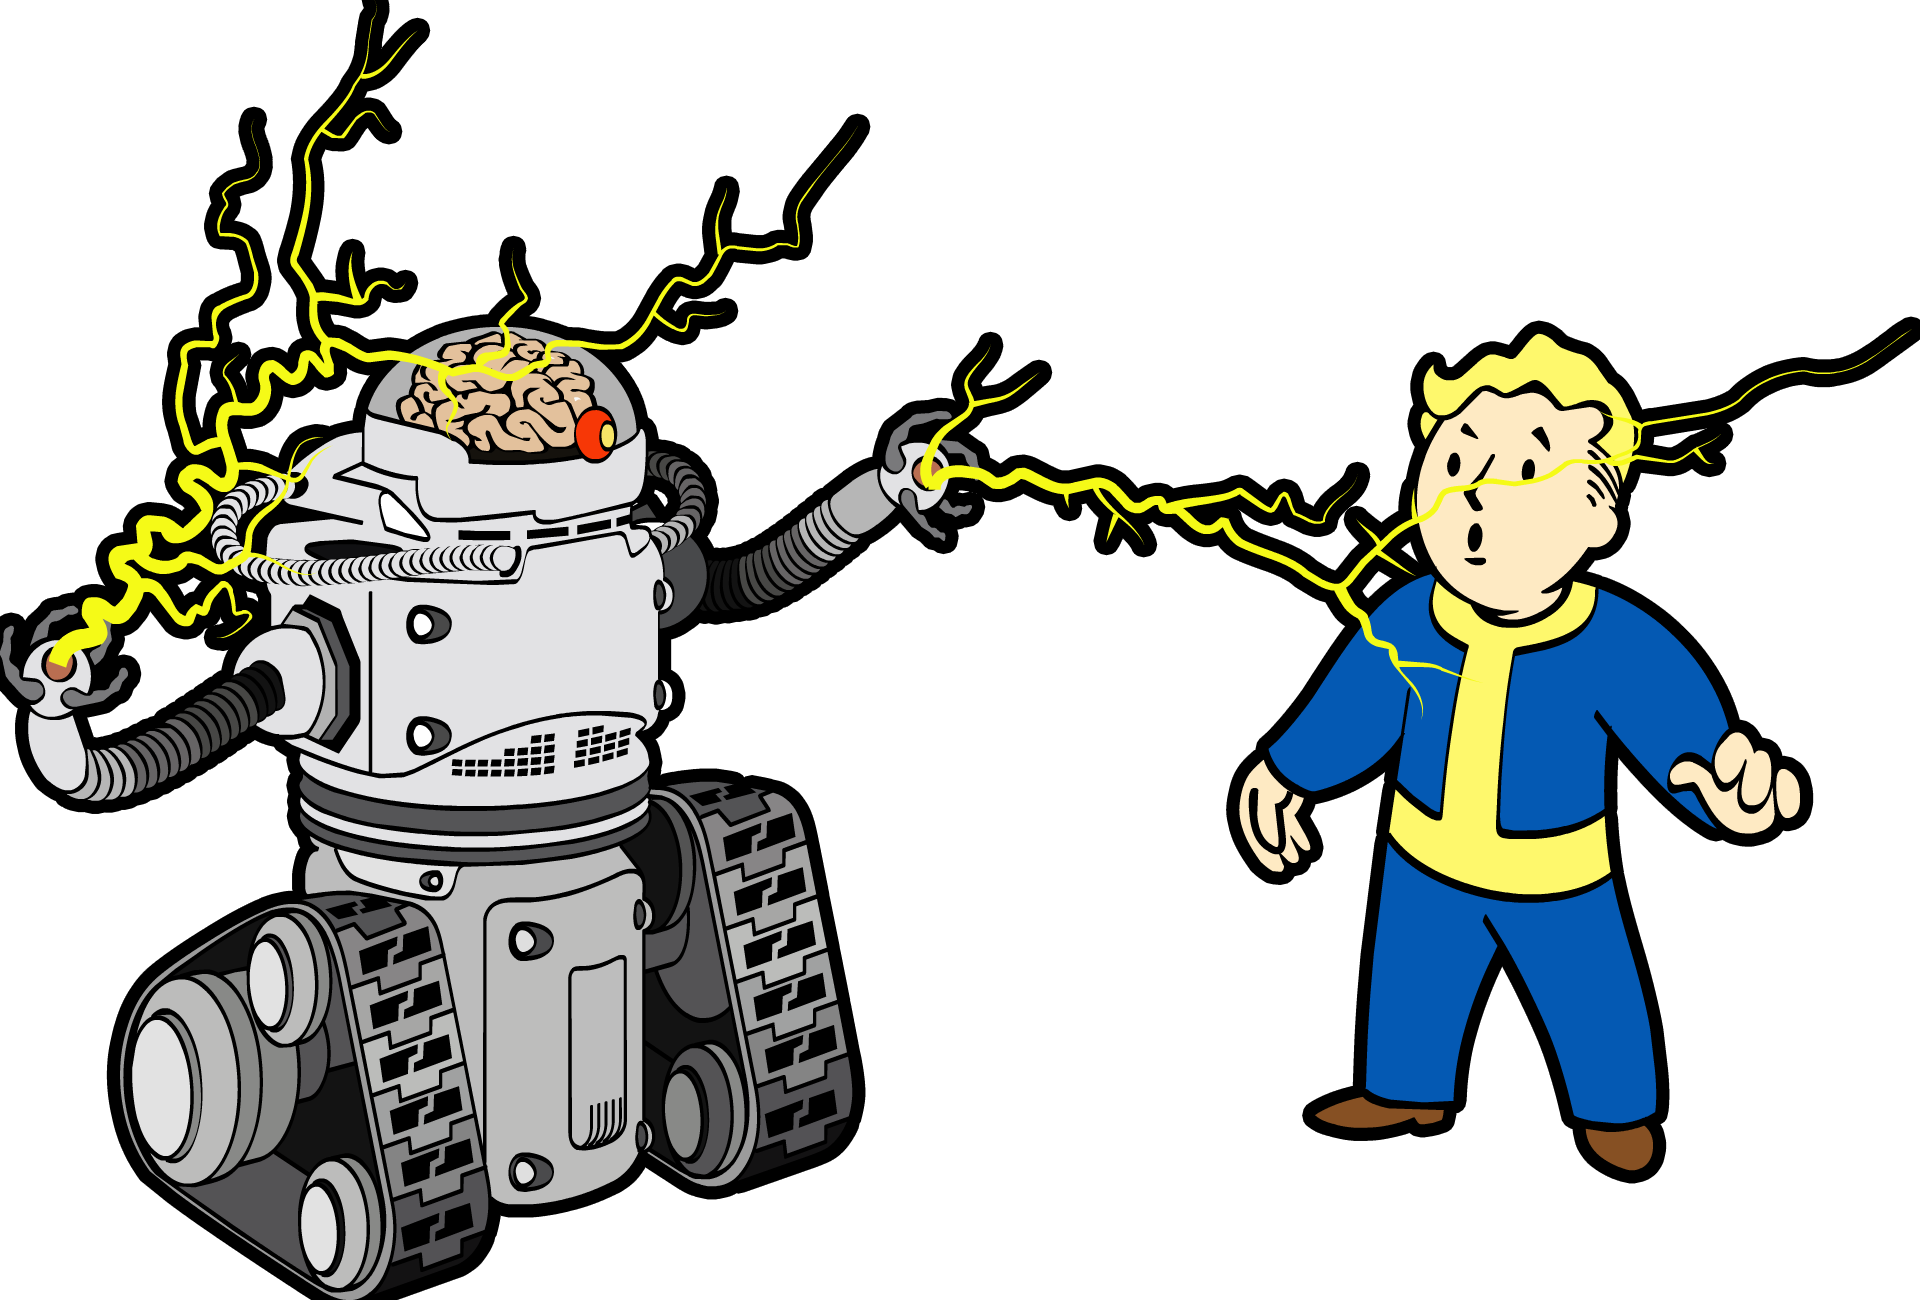 Fallout clipart fallout 1 Headhunting by Wiki Headhunting Wikia